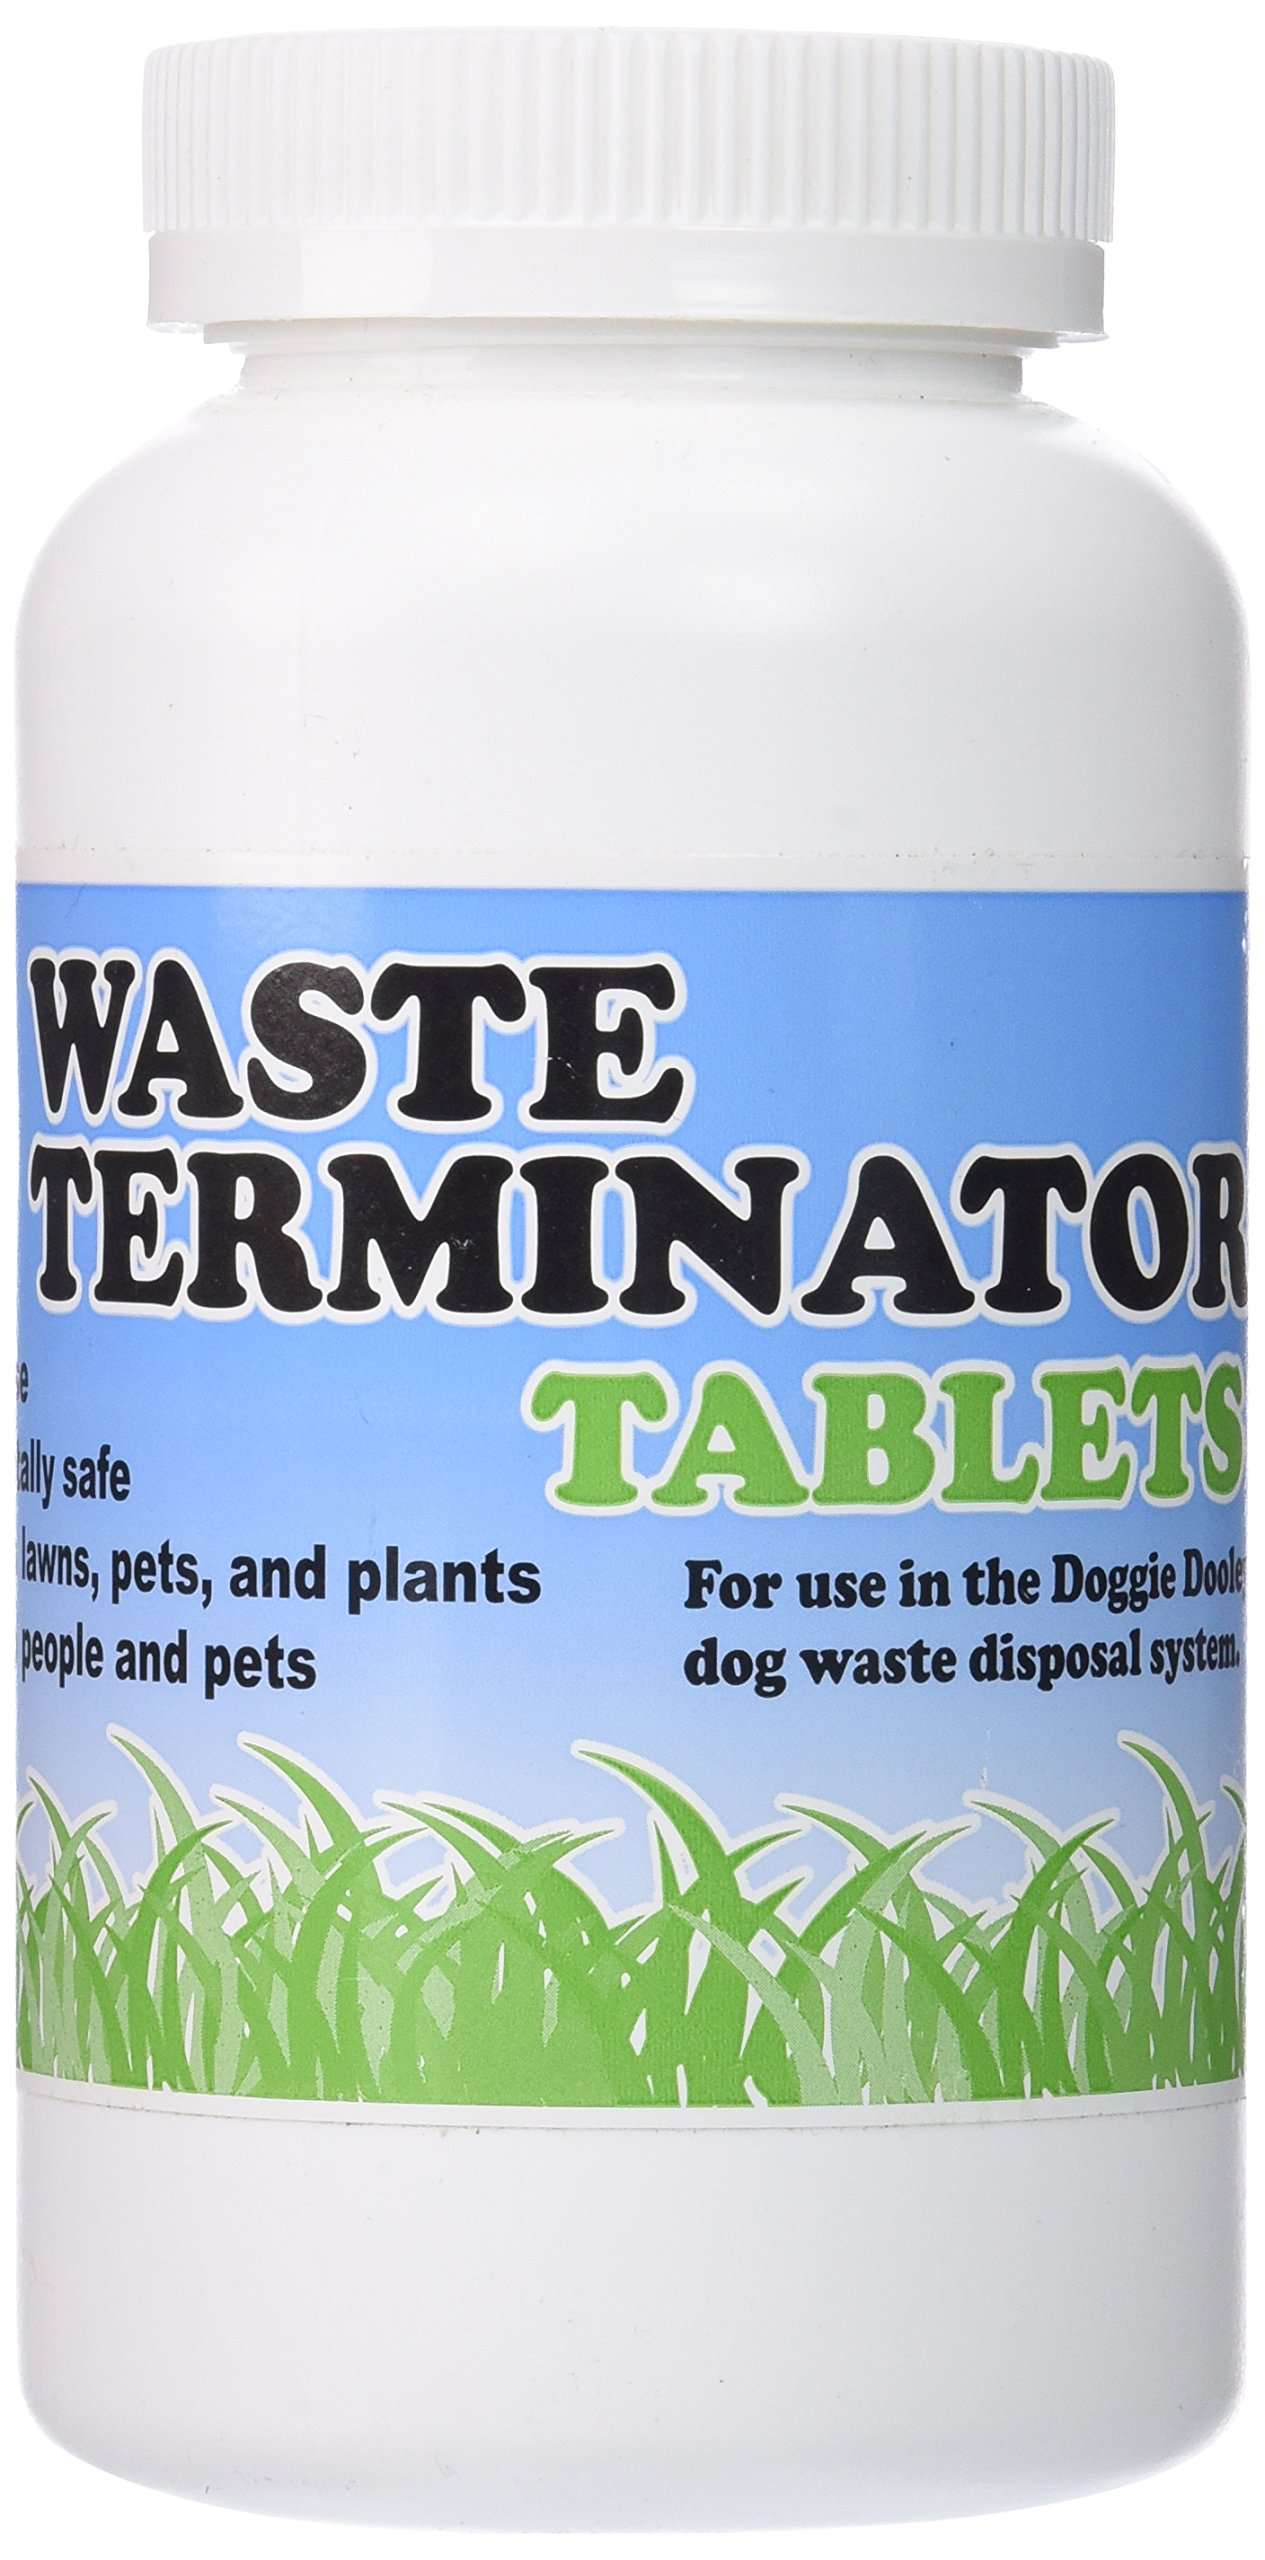 Hueter Toledo Doggie Dooley 100 Bottle Waste Terminator Tablets